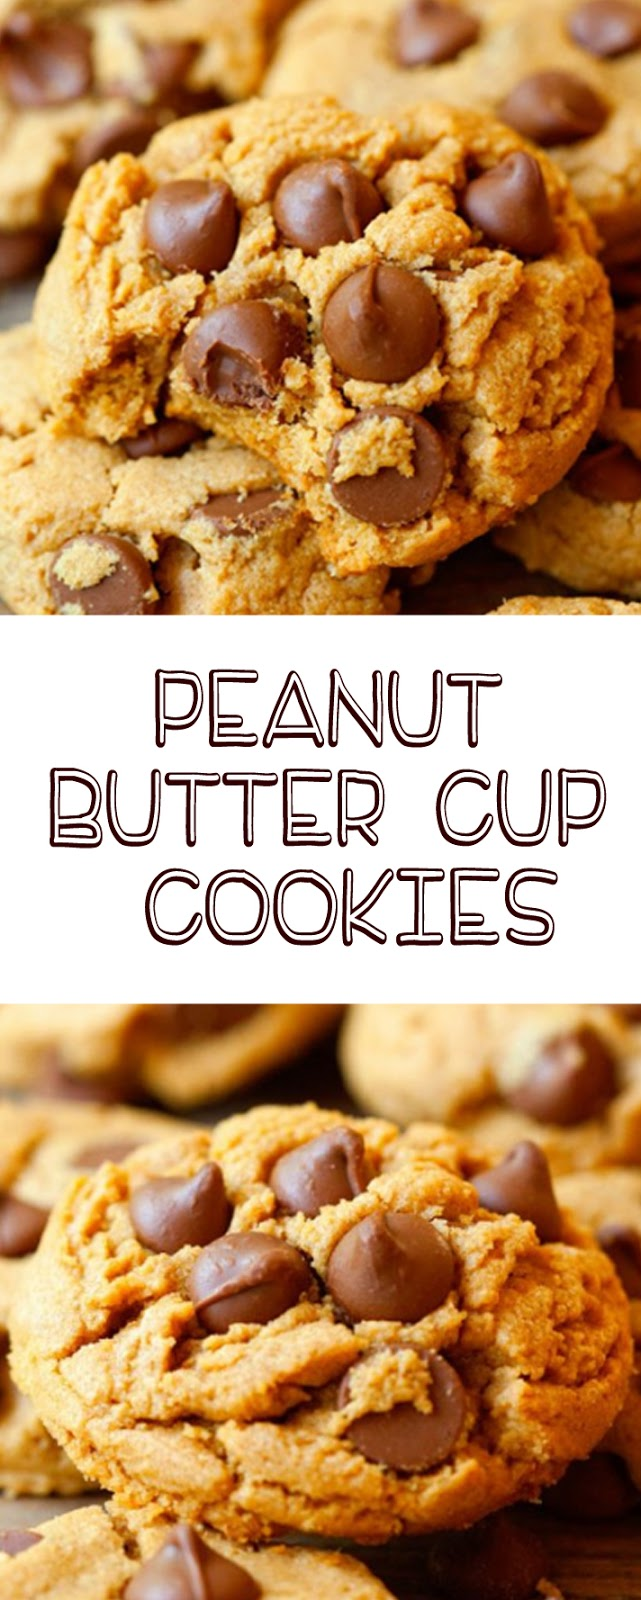 Peanut Butter Cup Cookies (GF)